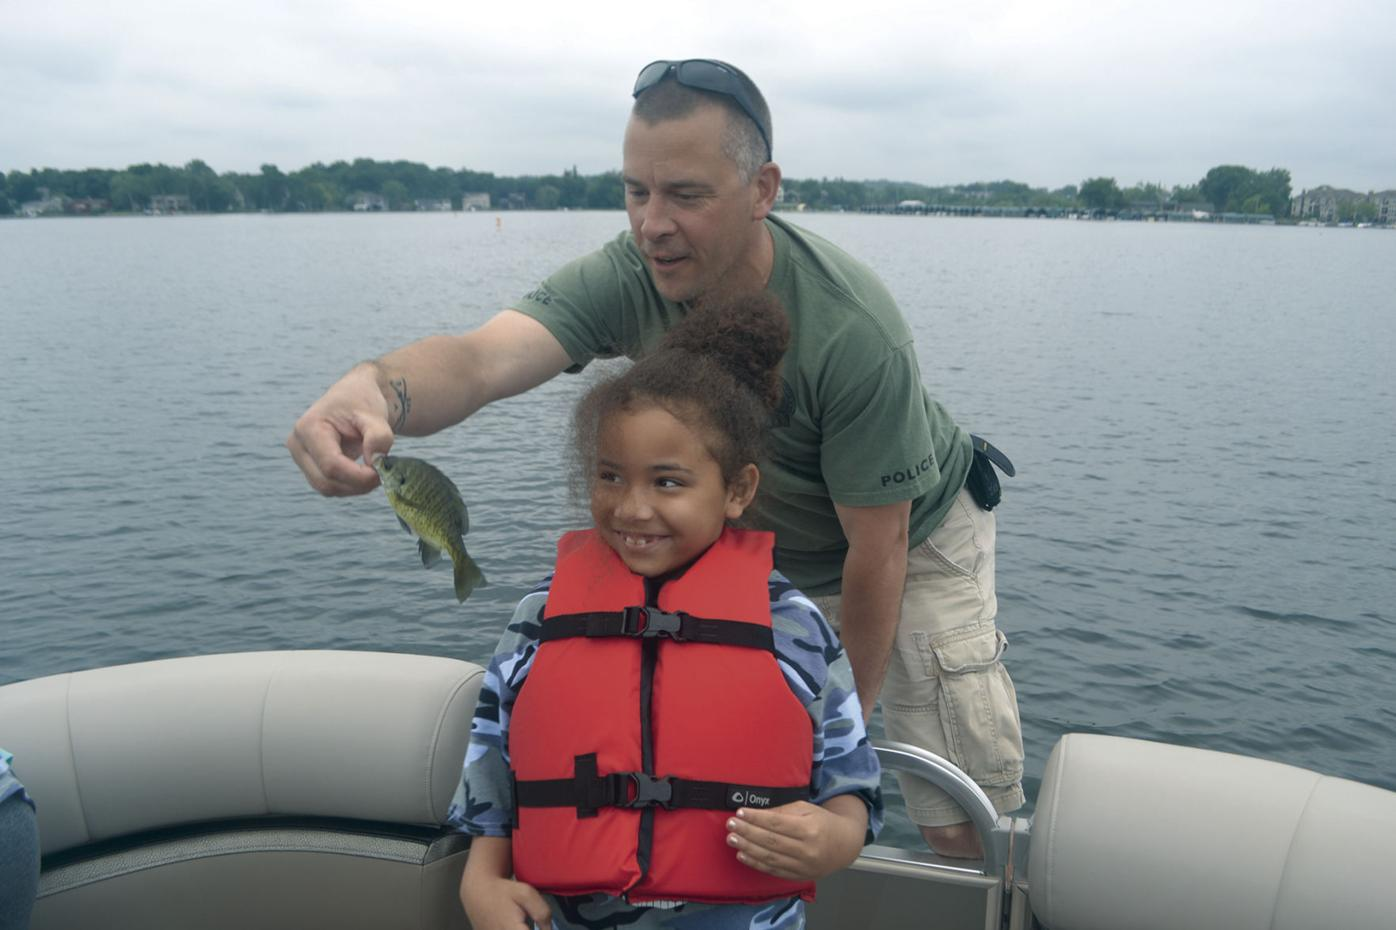 Hopkins police officers, local children hit Lake Minnetonka for a day of boating, fishing